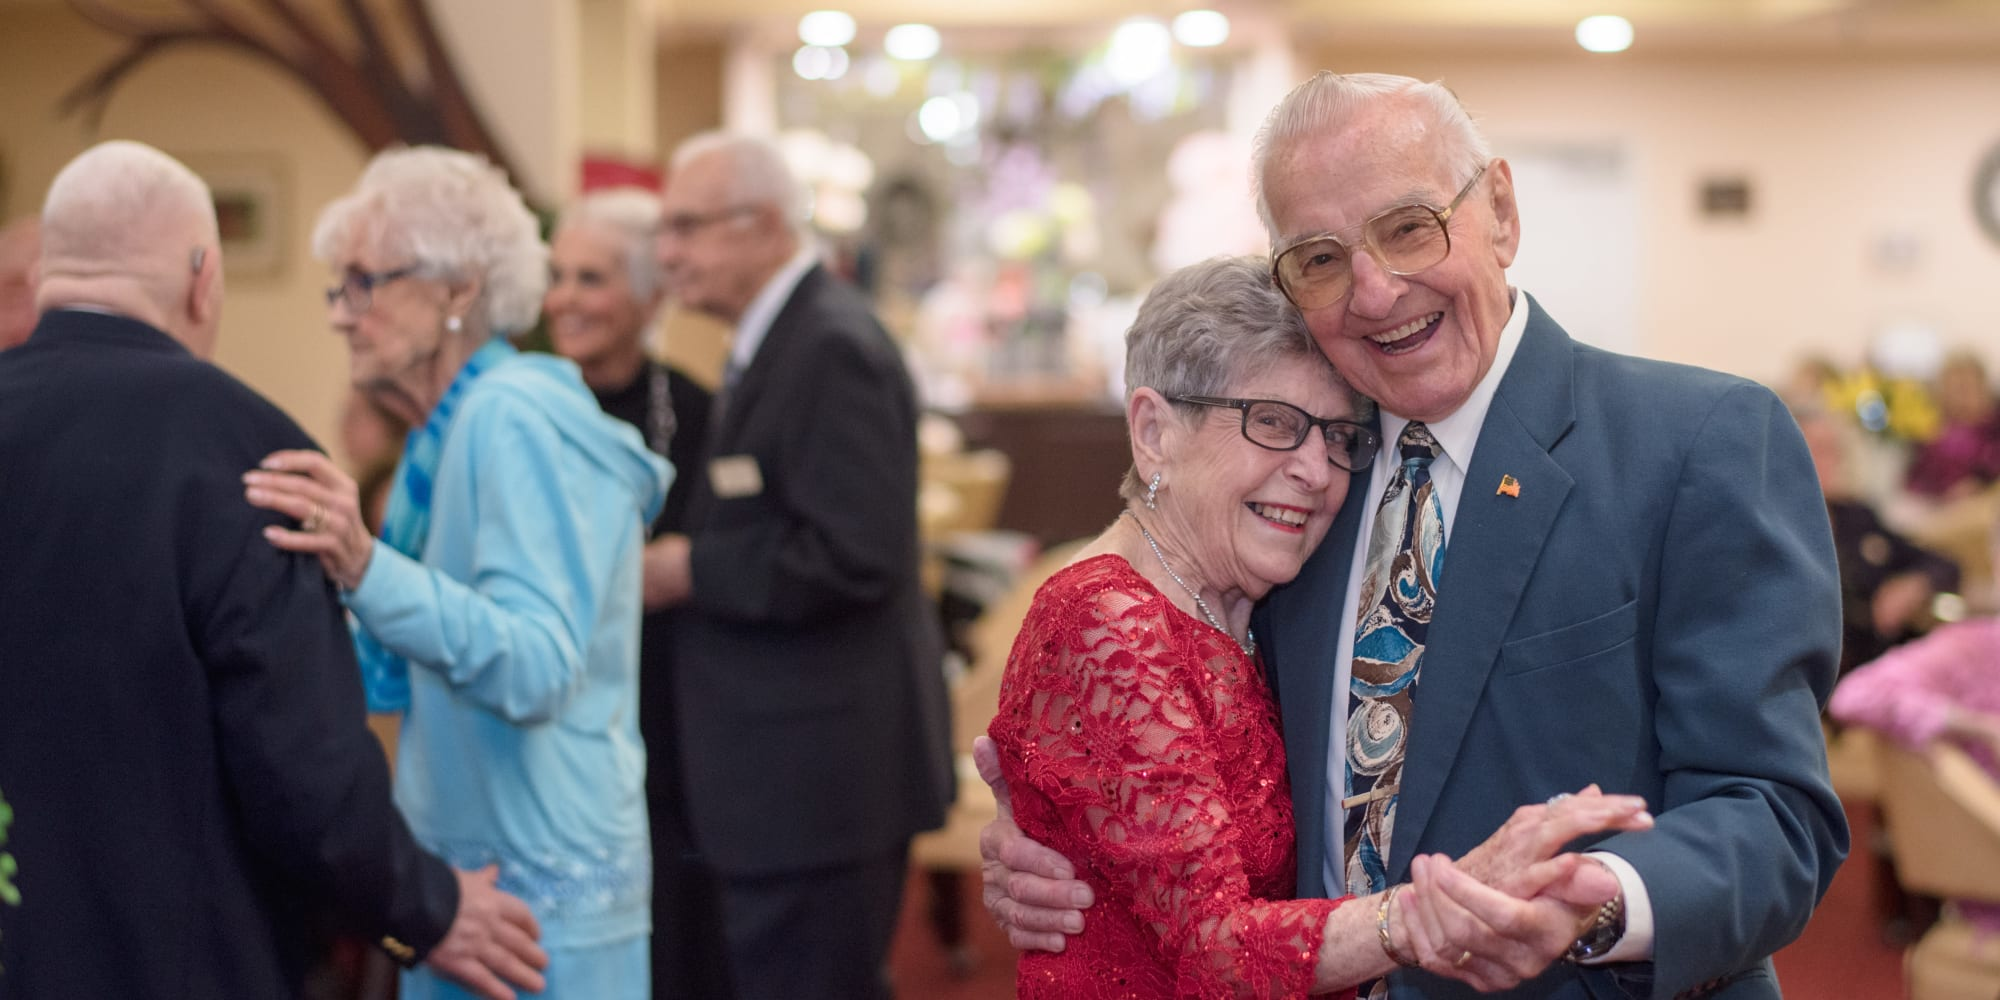 Residents of Hessler Heights Gracious Retirement Living in Leesburg, Virginia at a dance